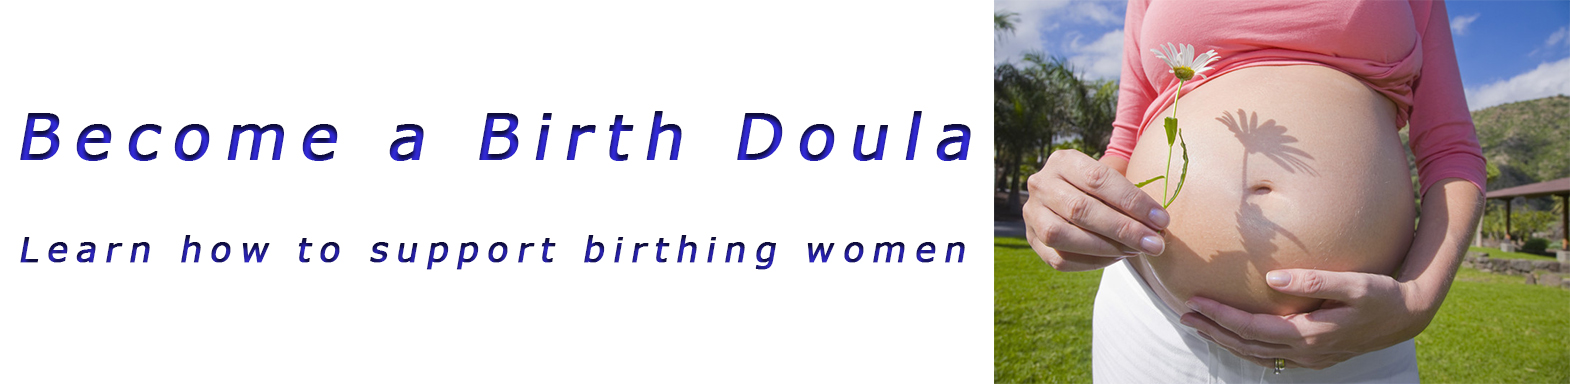 Become a Birth Doula - Learn how to support birthing women